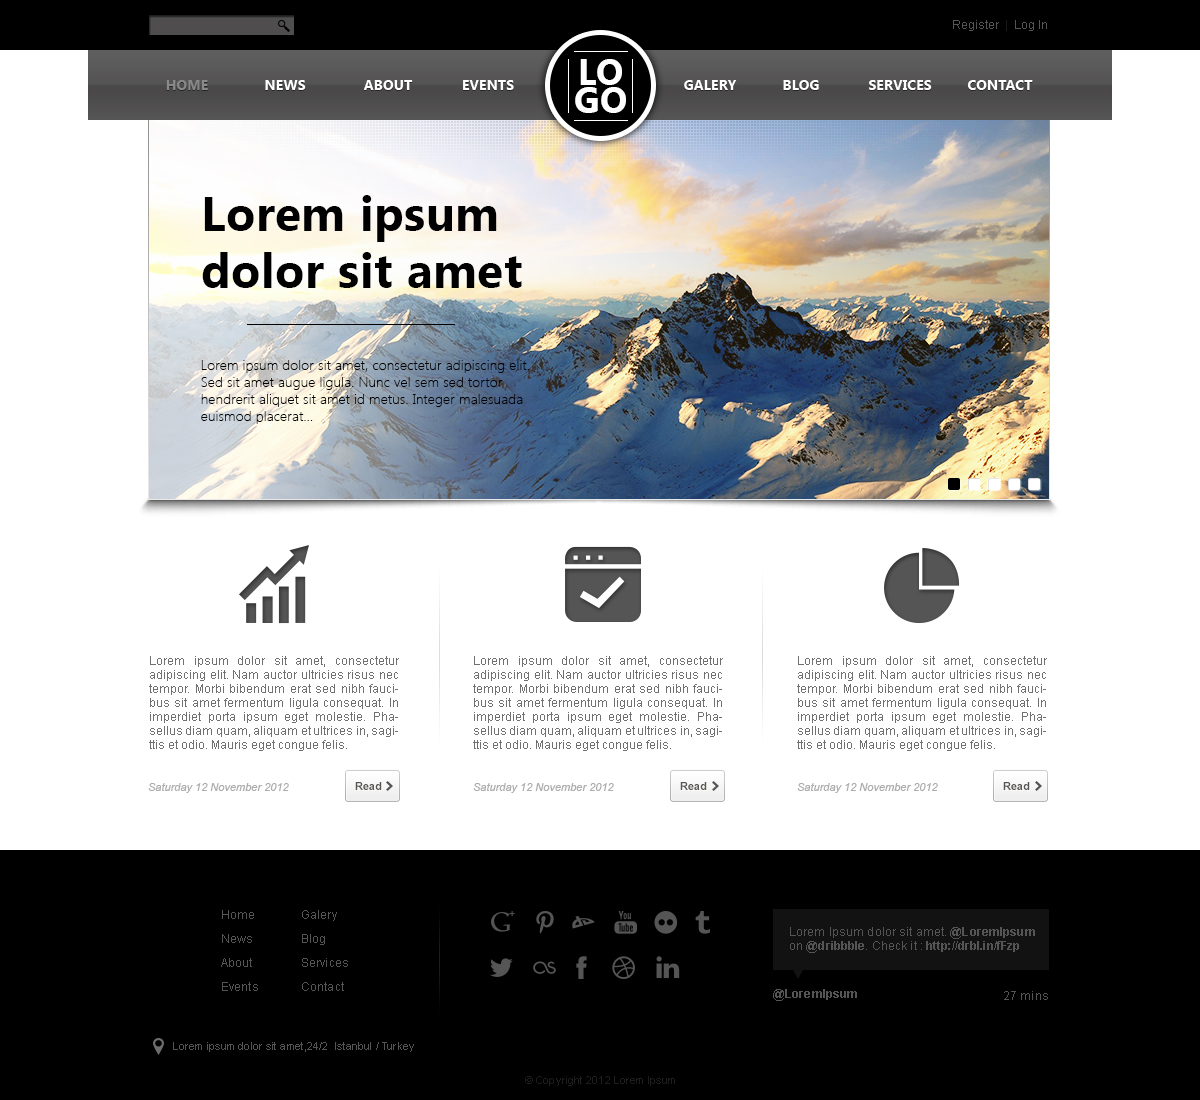 30 Free PSD Web Design Templates Inspirationfeed TZqDuTXC